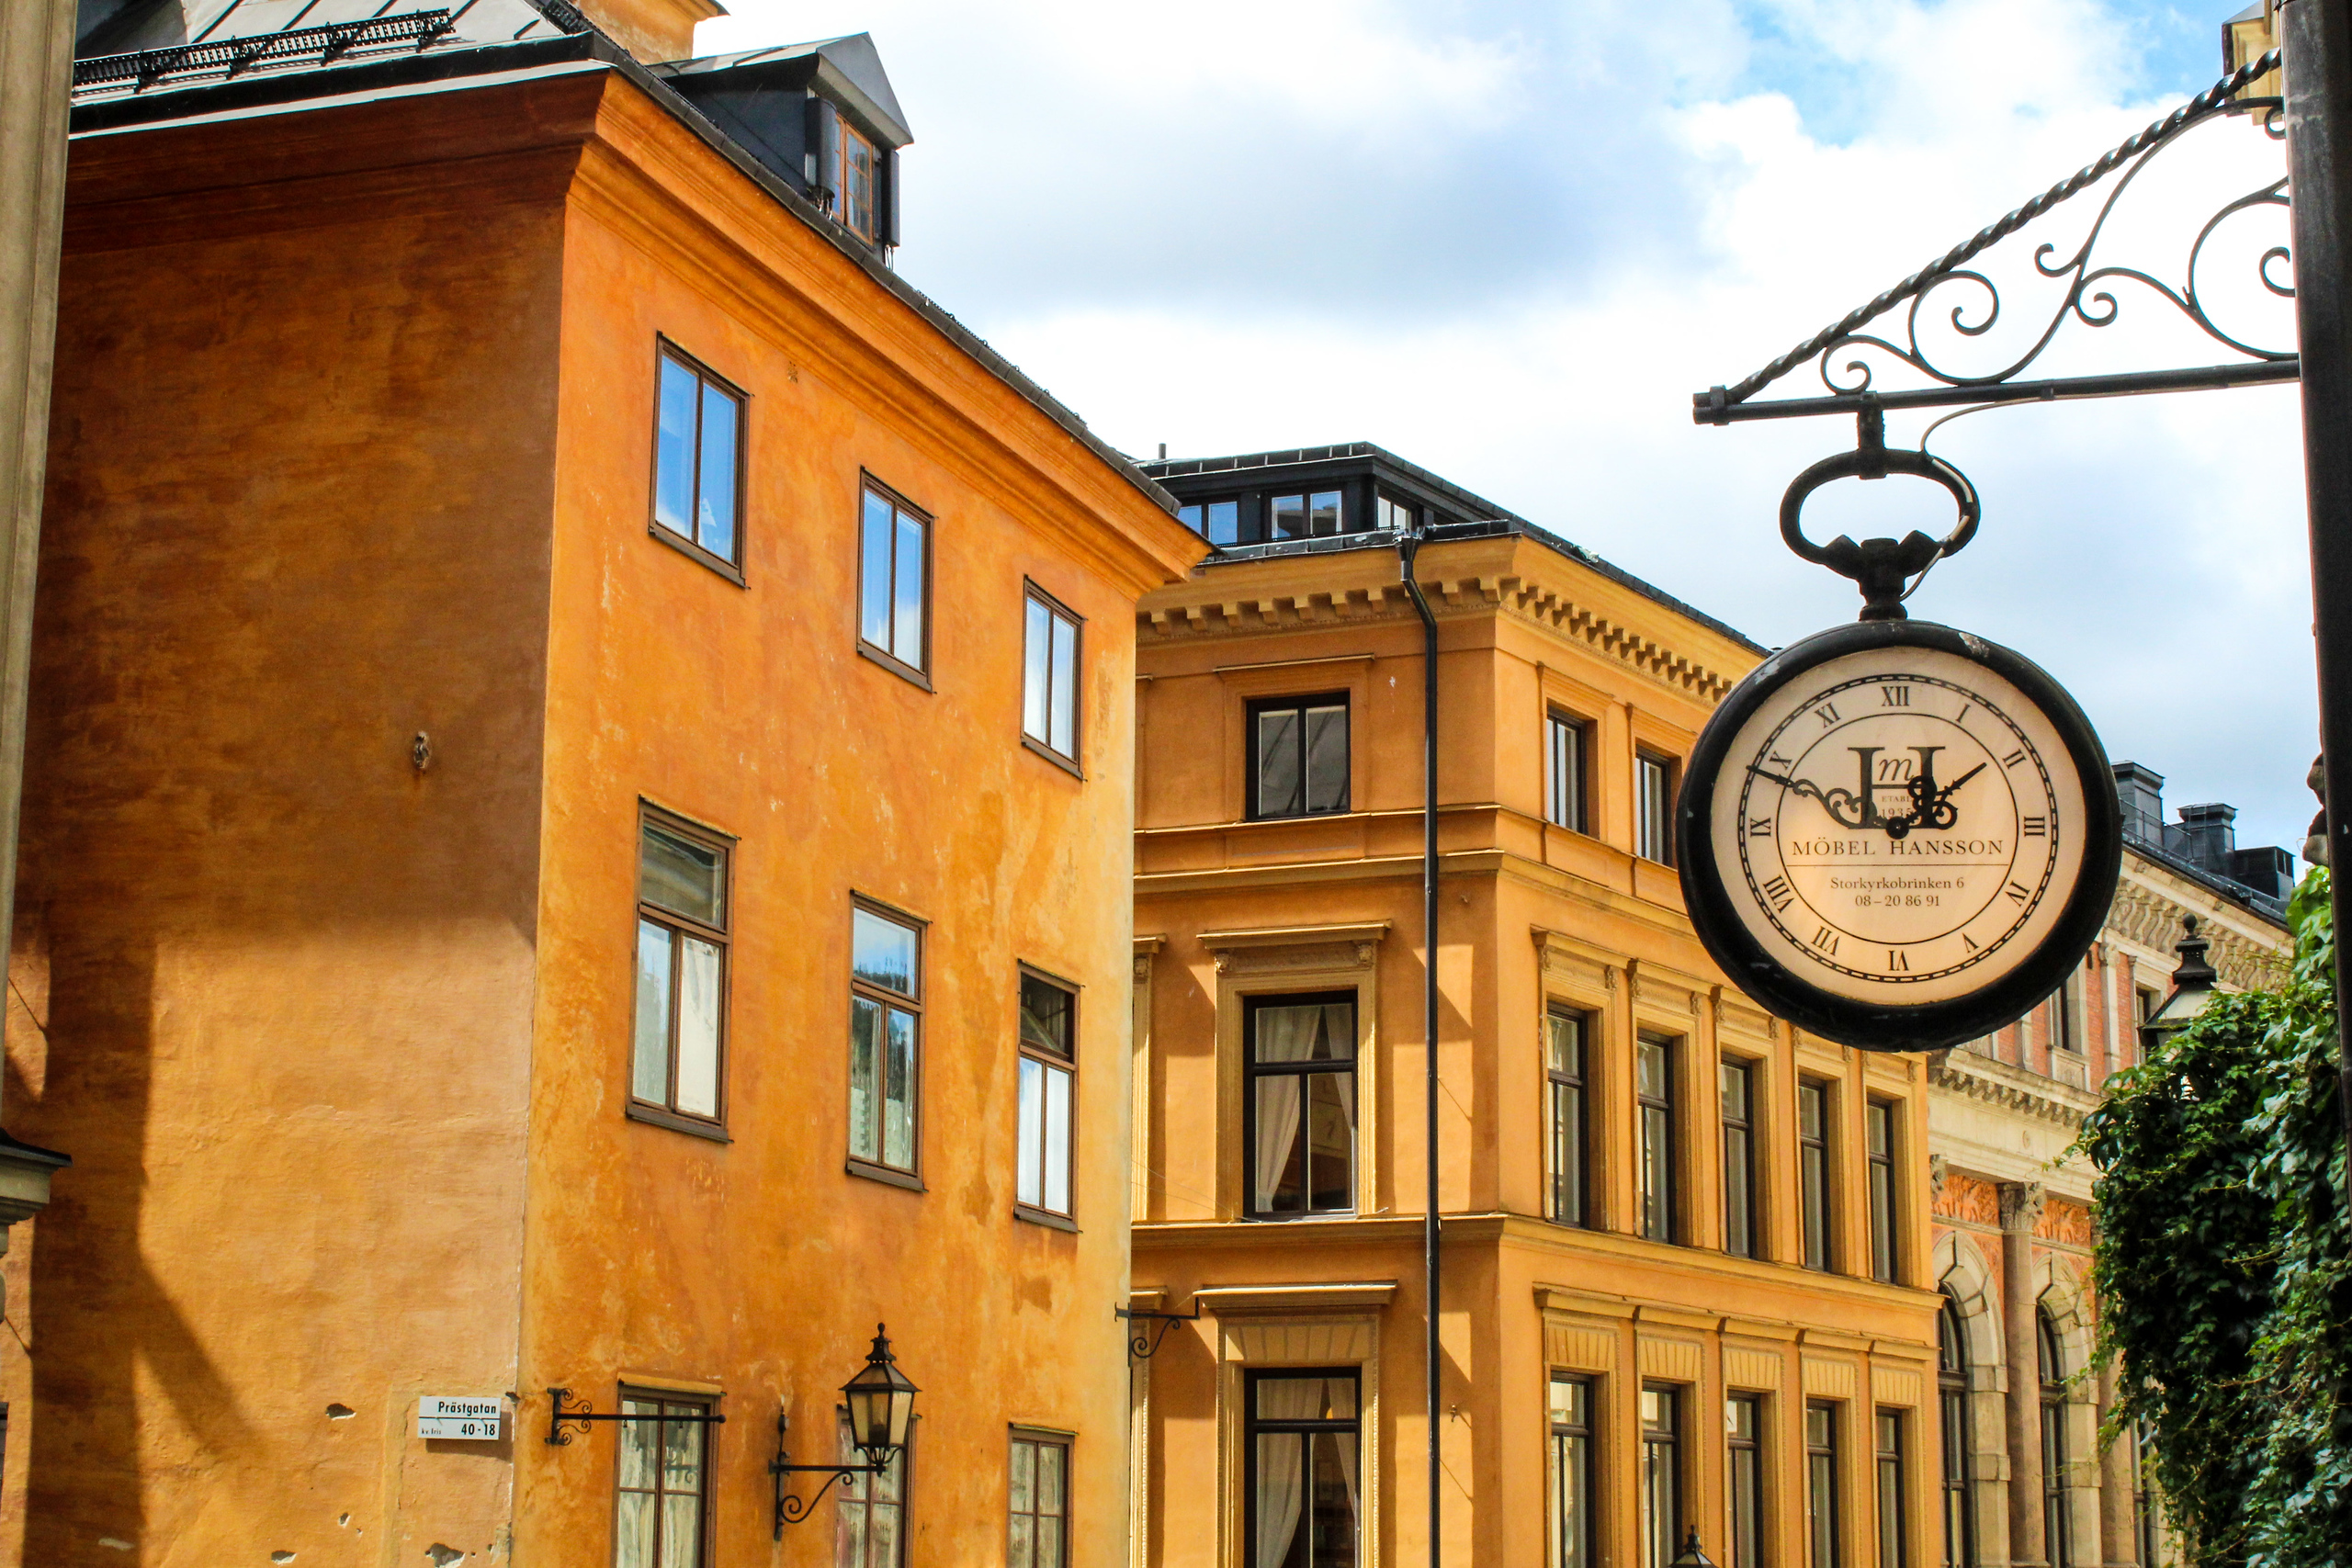 stockholm 1 day itinerary: take lots of photos in the old town